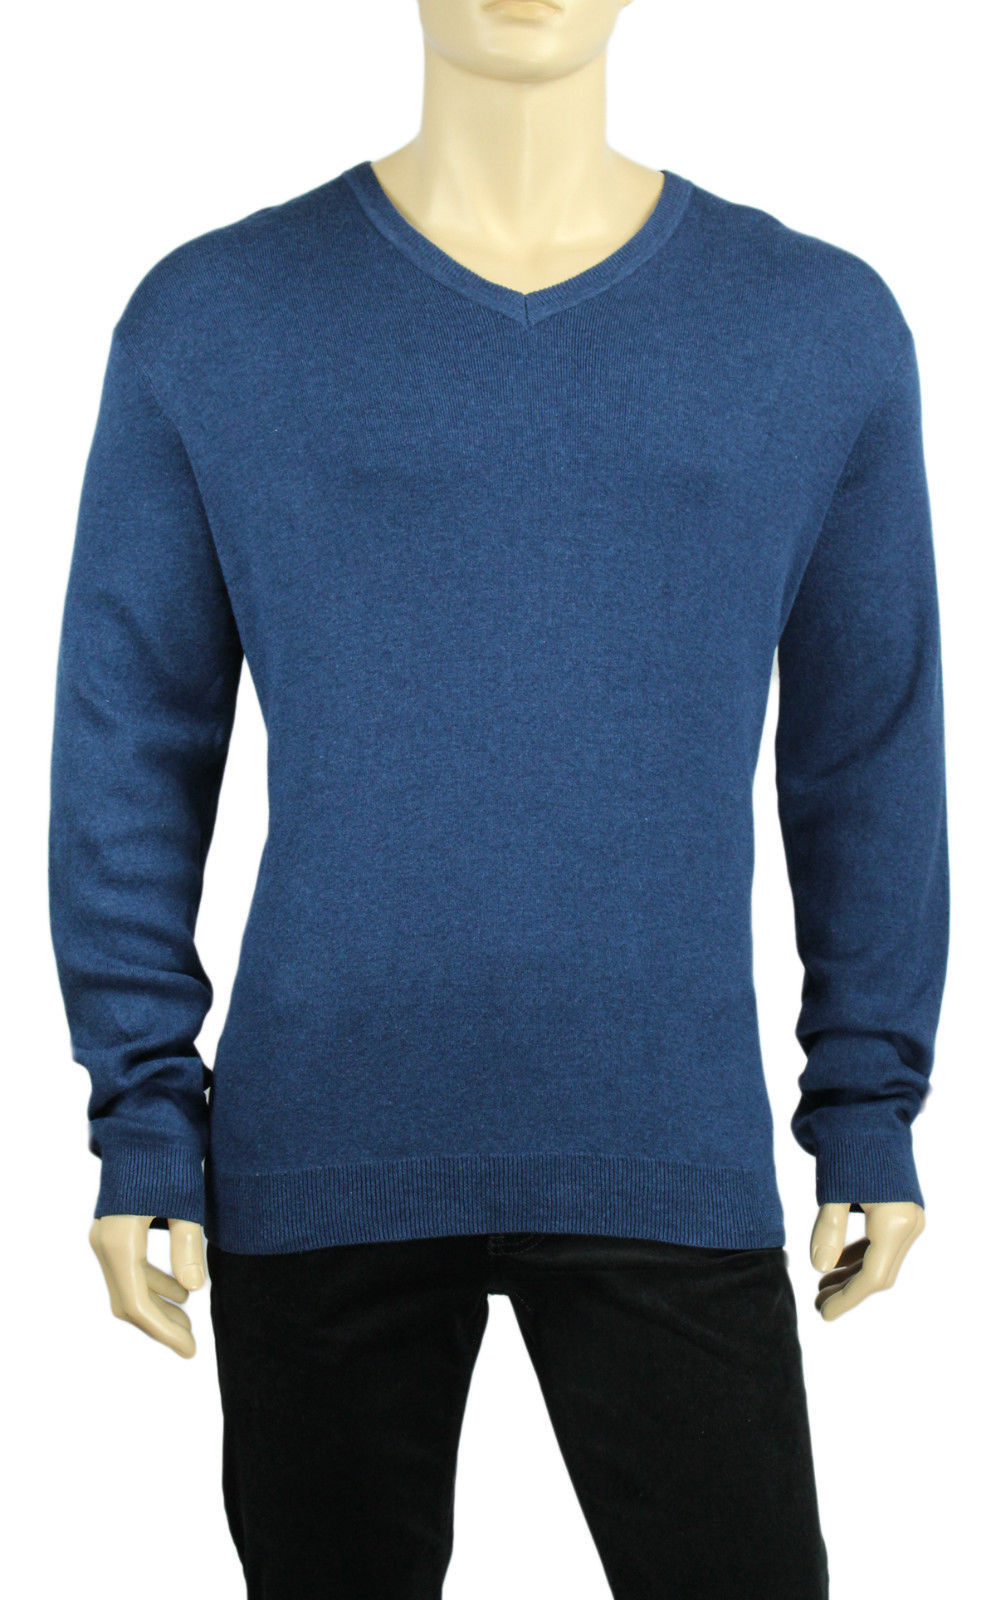 Primary image for NEW CALVIN KLEIN V NECK BLUE COTTON BLEND PULLOVER SWEATER XL $79